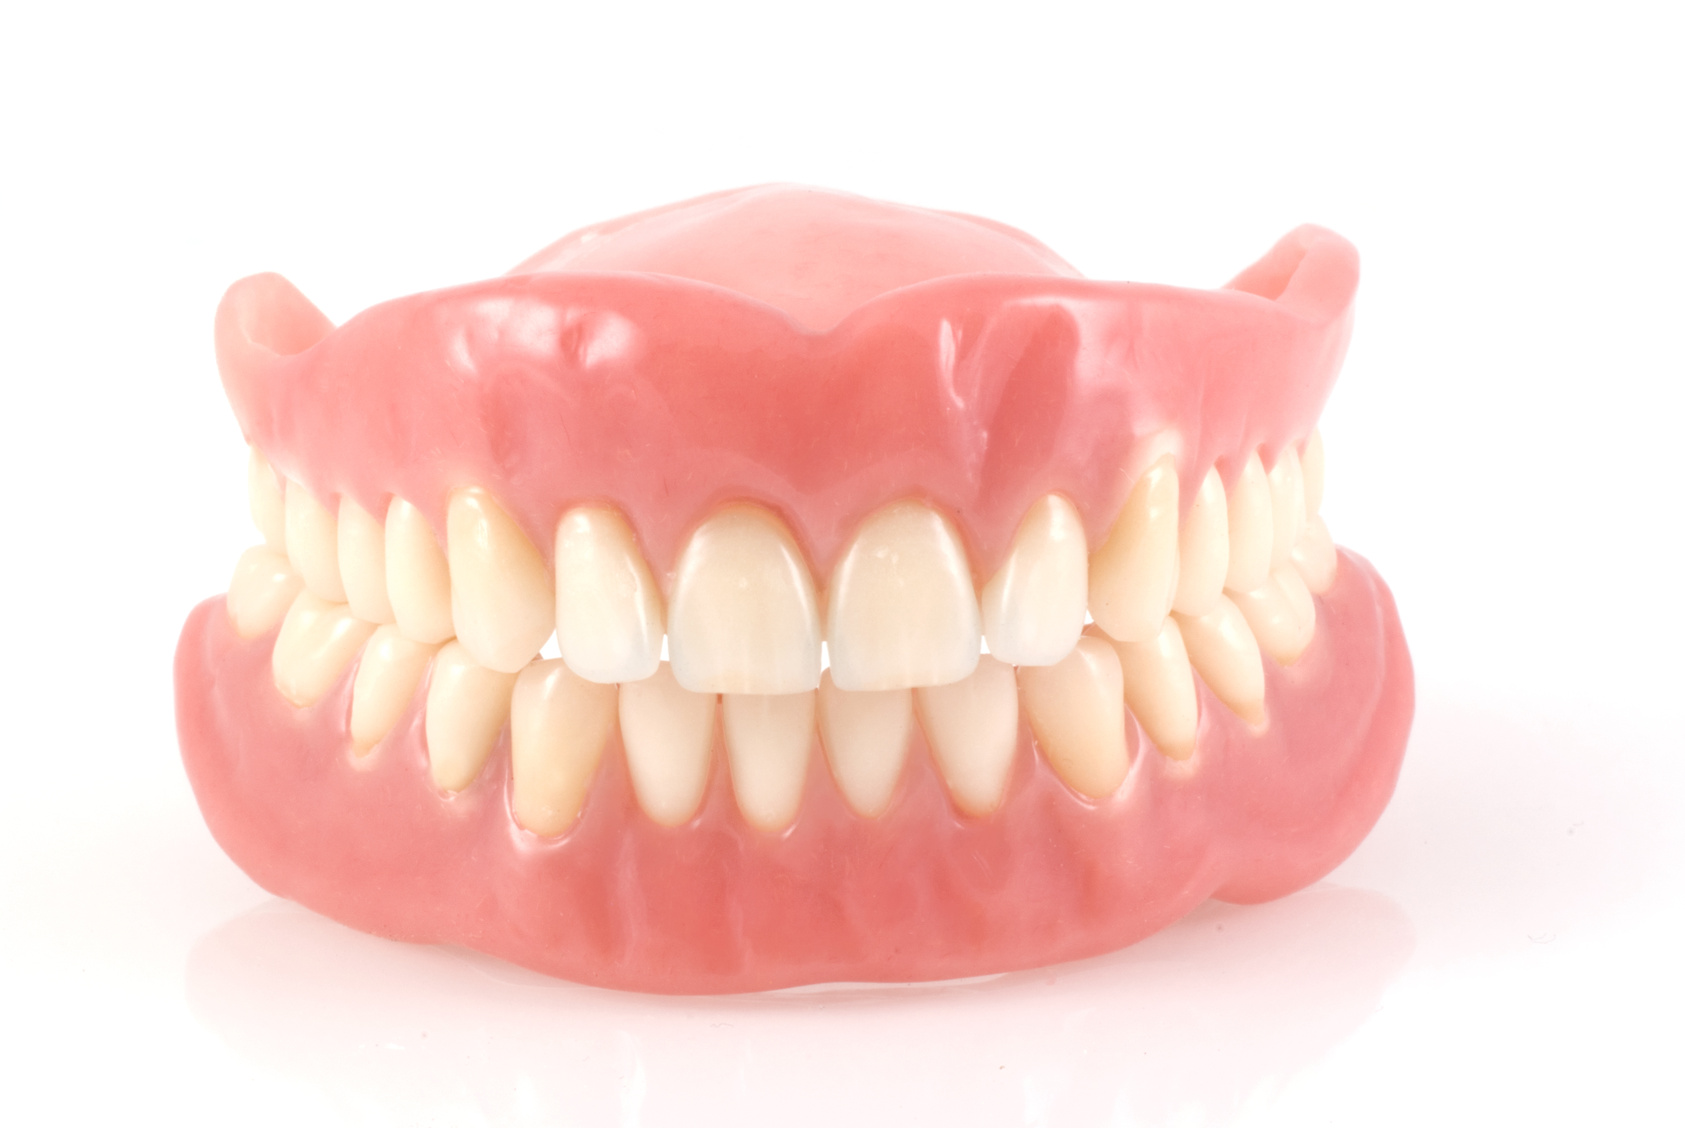 Stay Up-to-Date on Your Denture Needs